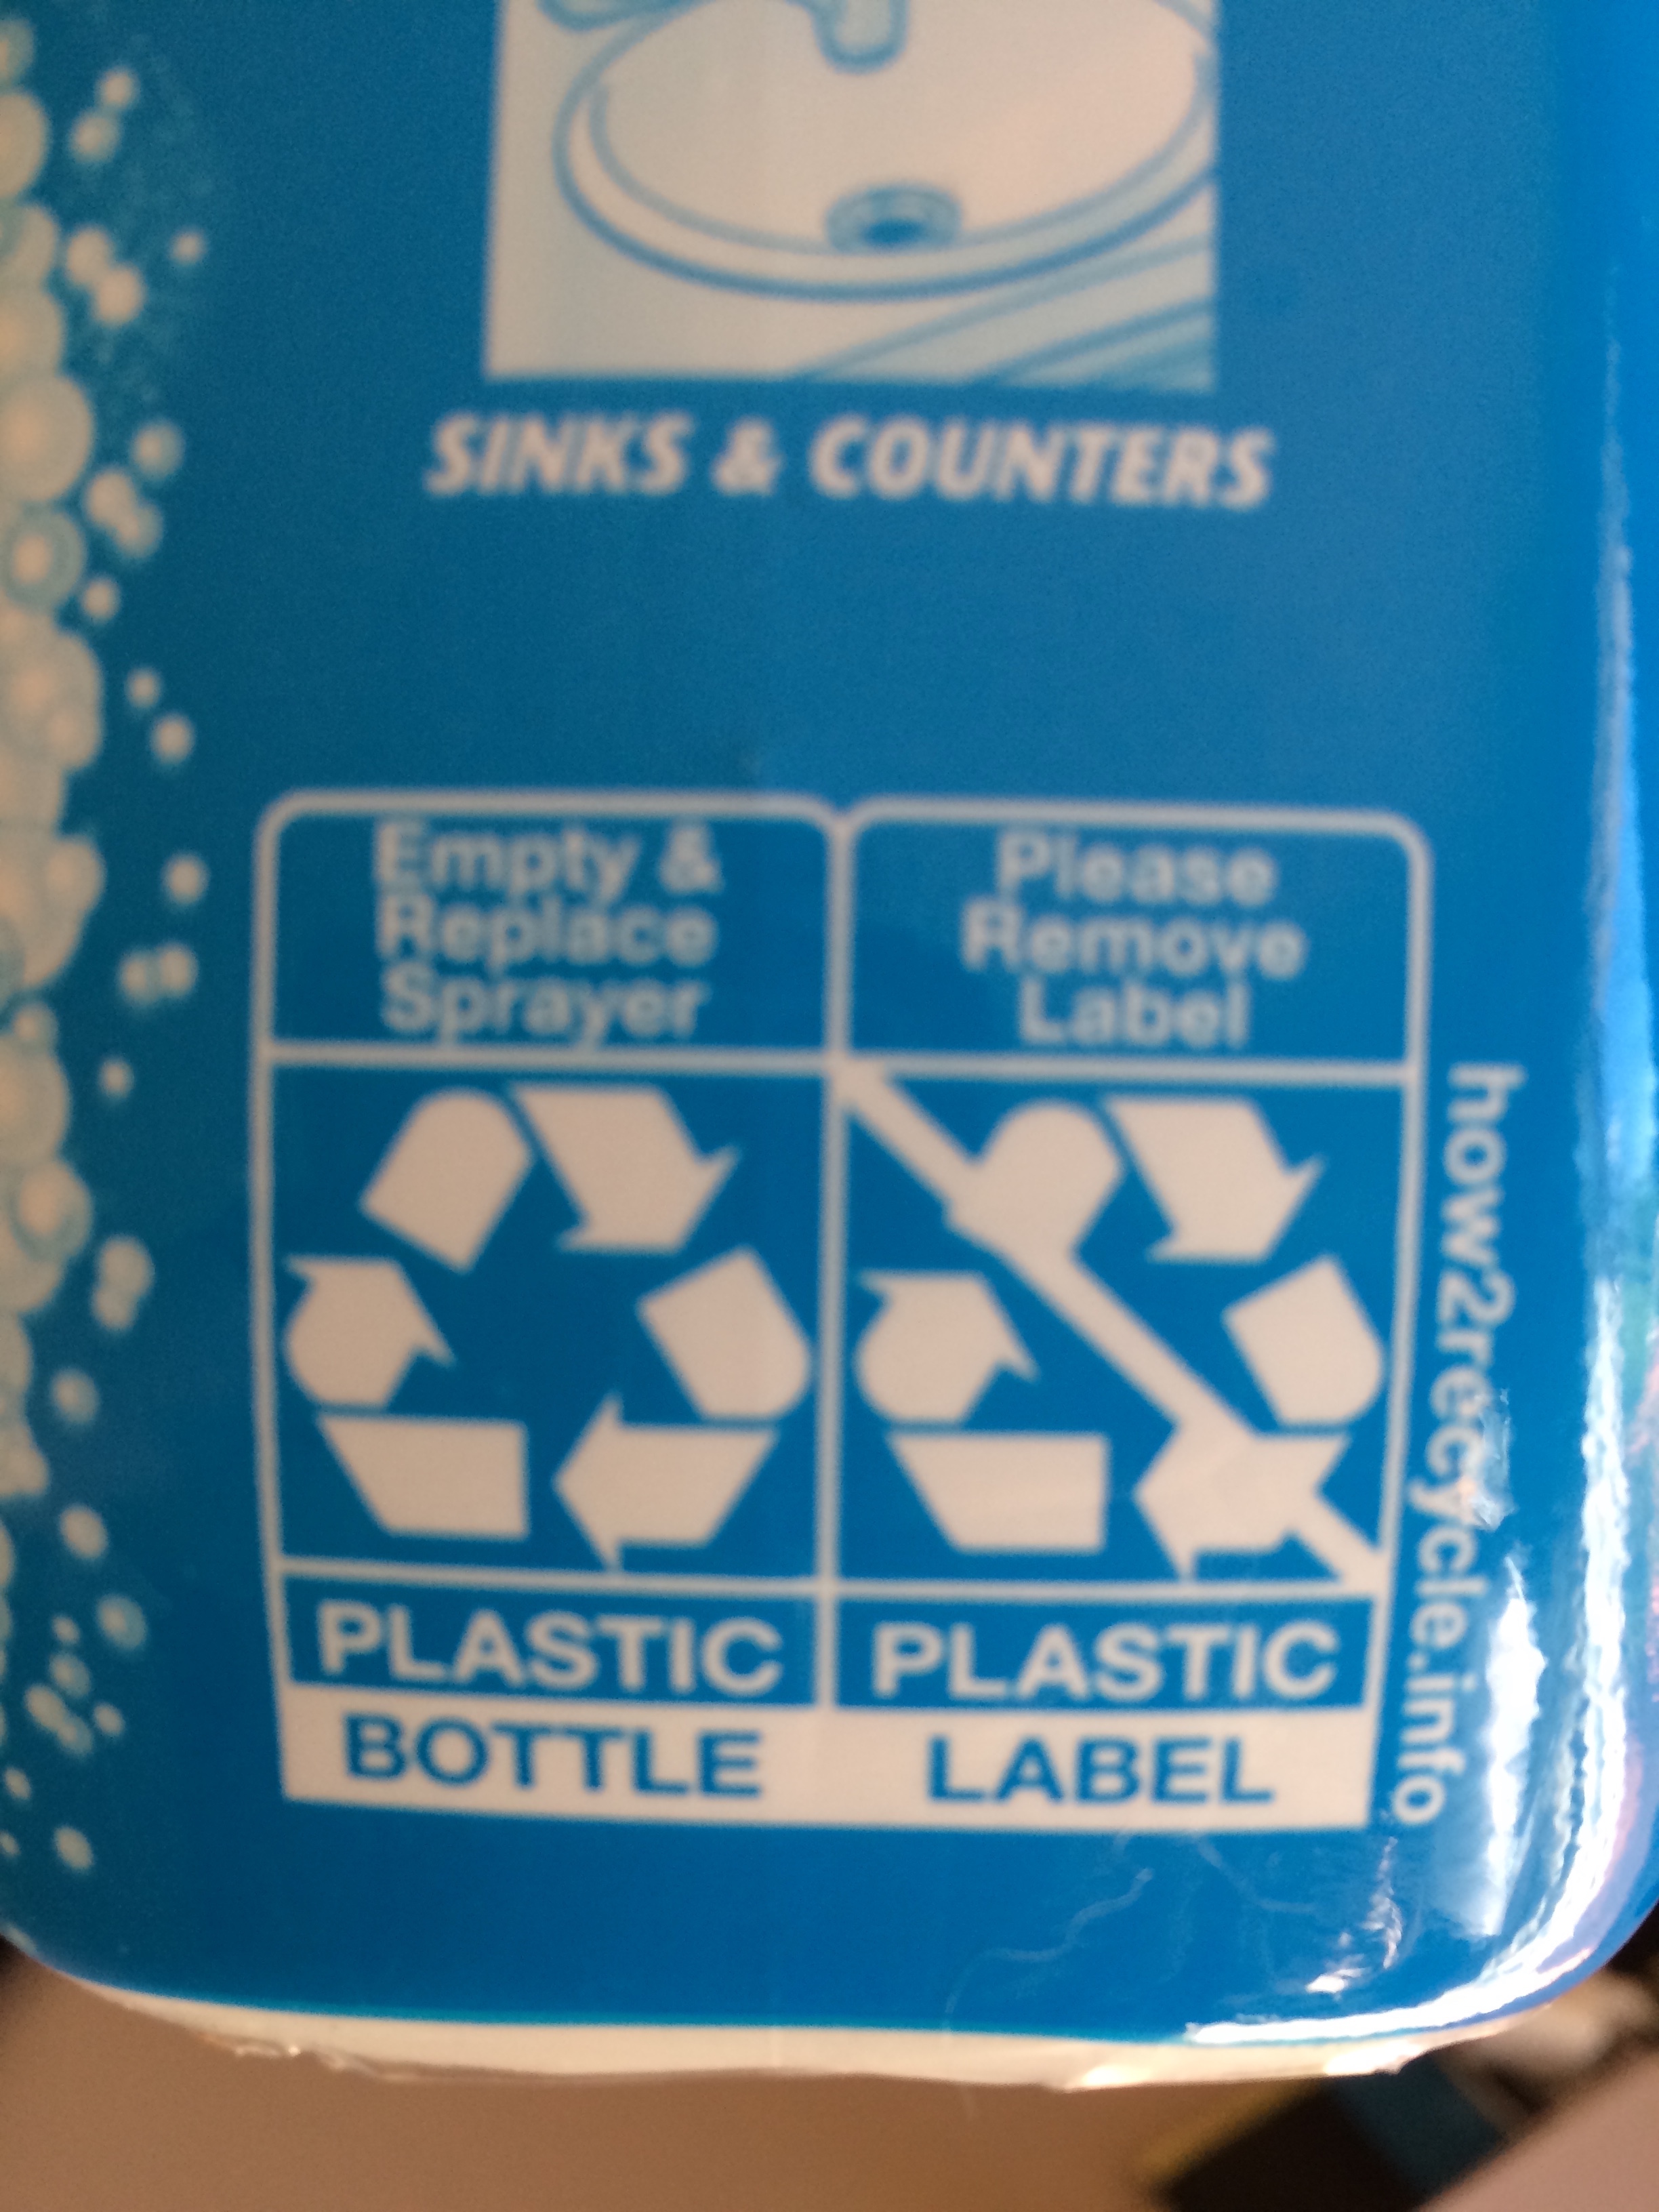 Plastic Label Recycling